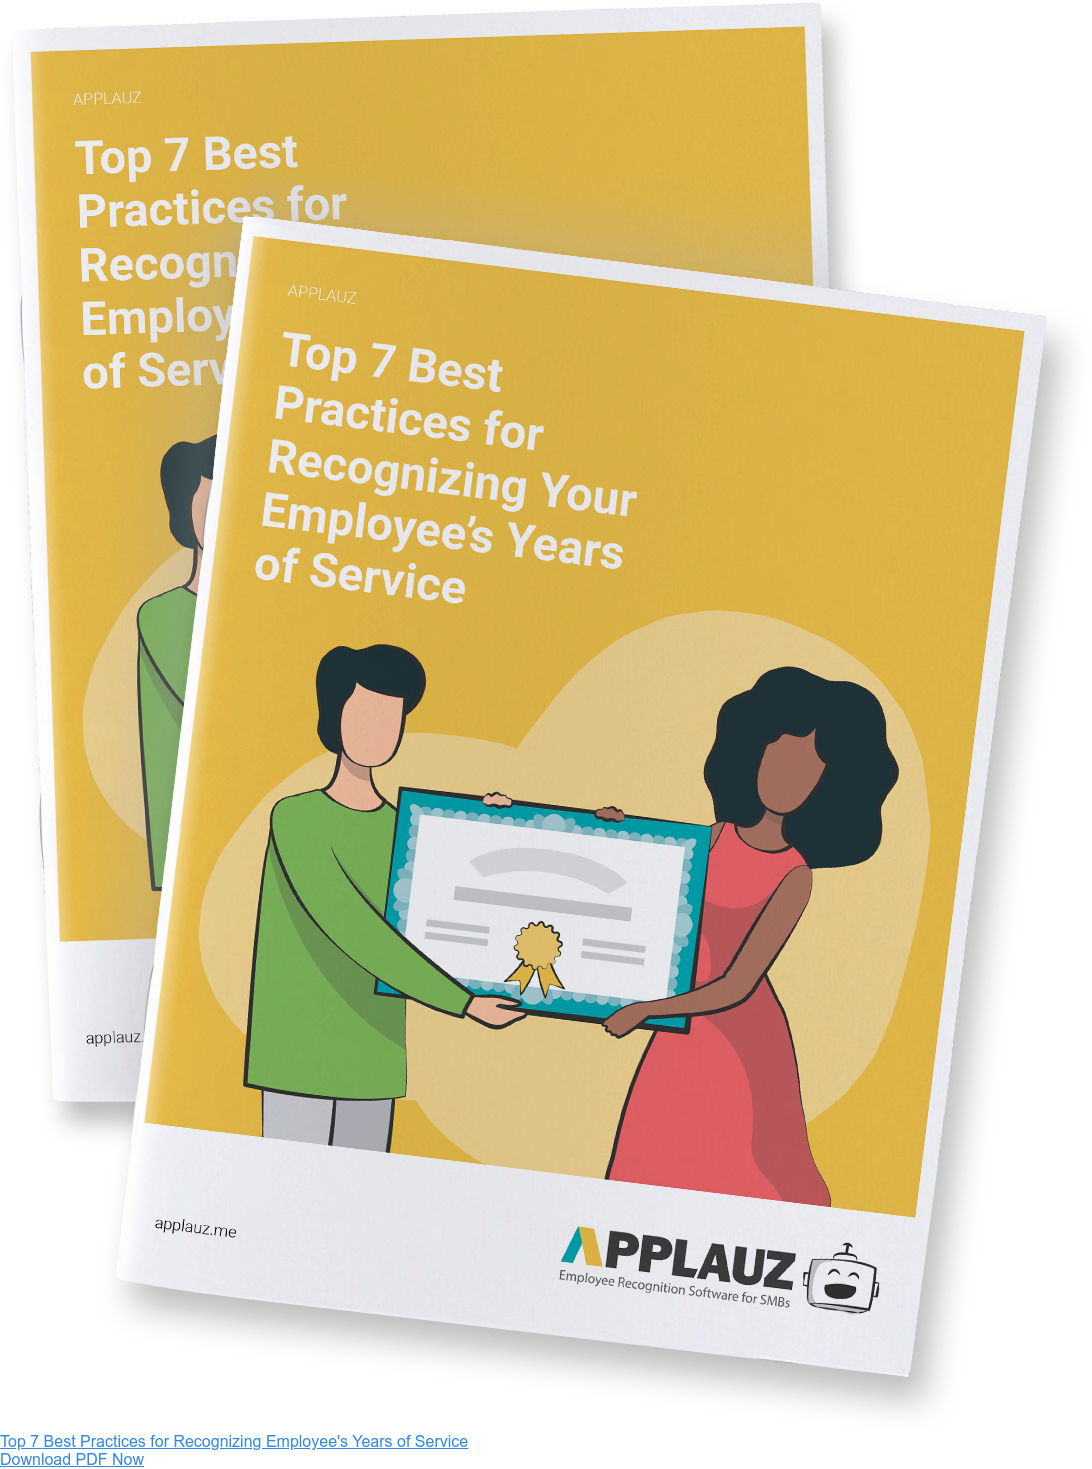 DIscover the top 7 best practices for celebrating years of service - Download PDF Guide